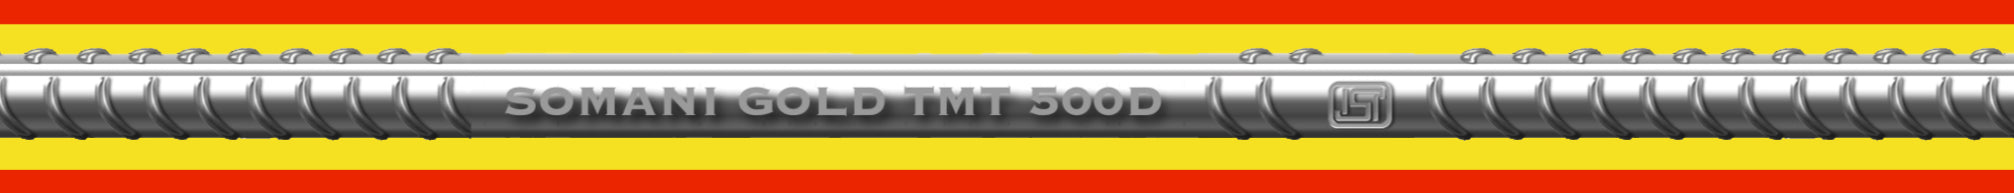 Somani Gold TMT Steel | Hindustan Steel Suppliers